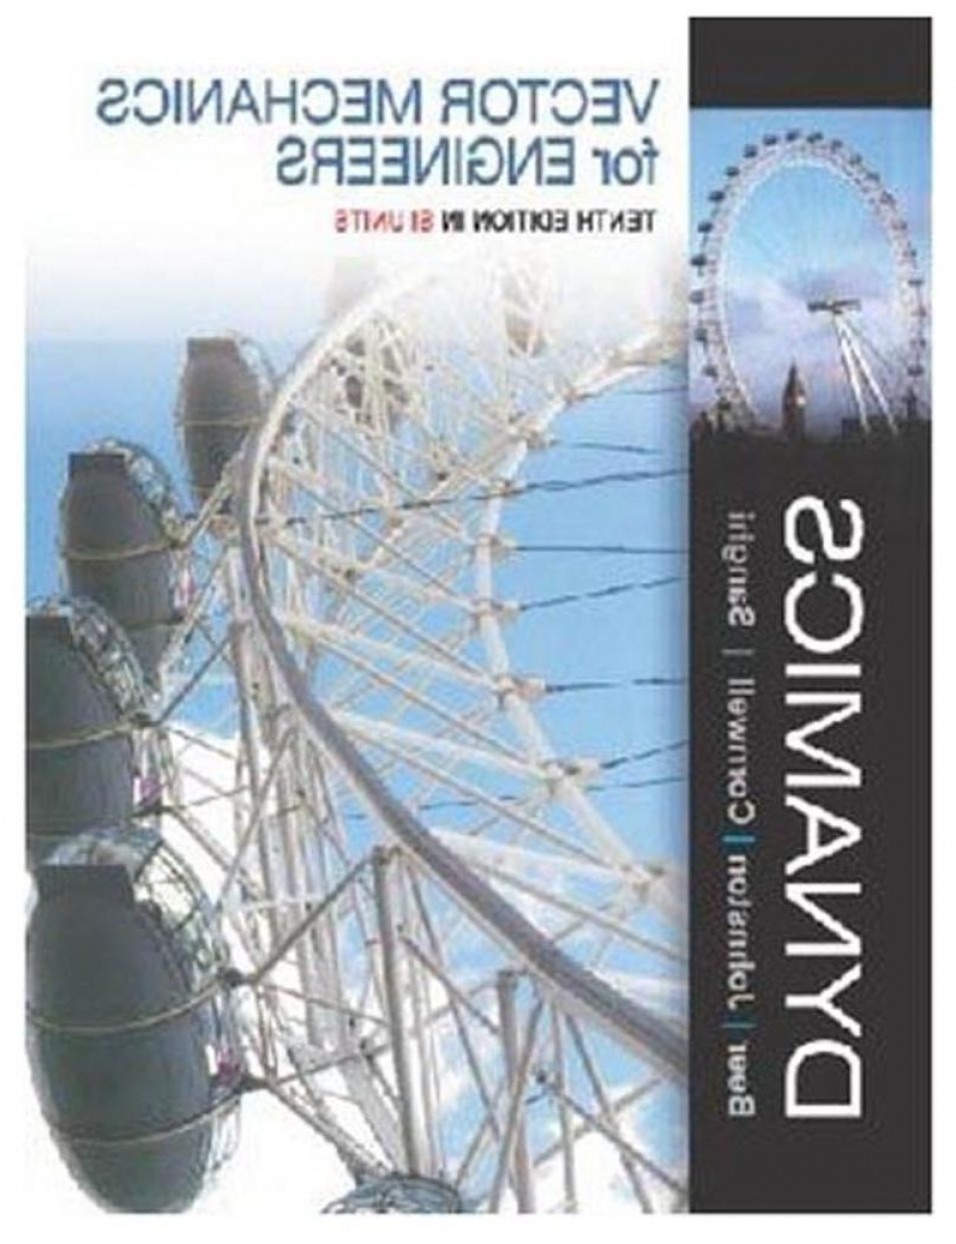 Vector Mechanics For Engineers Dynamics: Vector Mechanics For Engineers Dynamics Si Units Th Edition Cmplxbooks Pdp